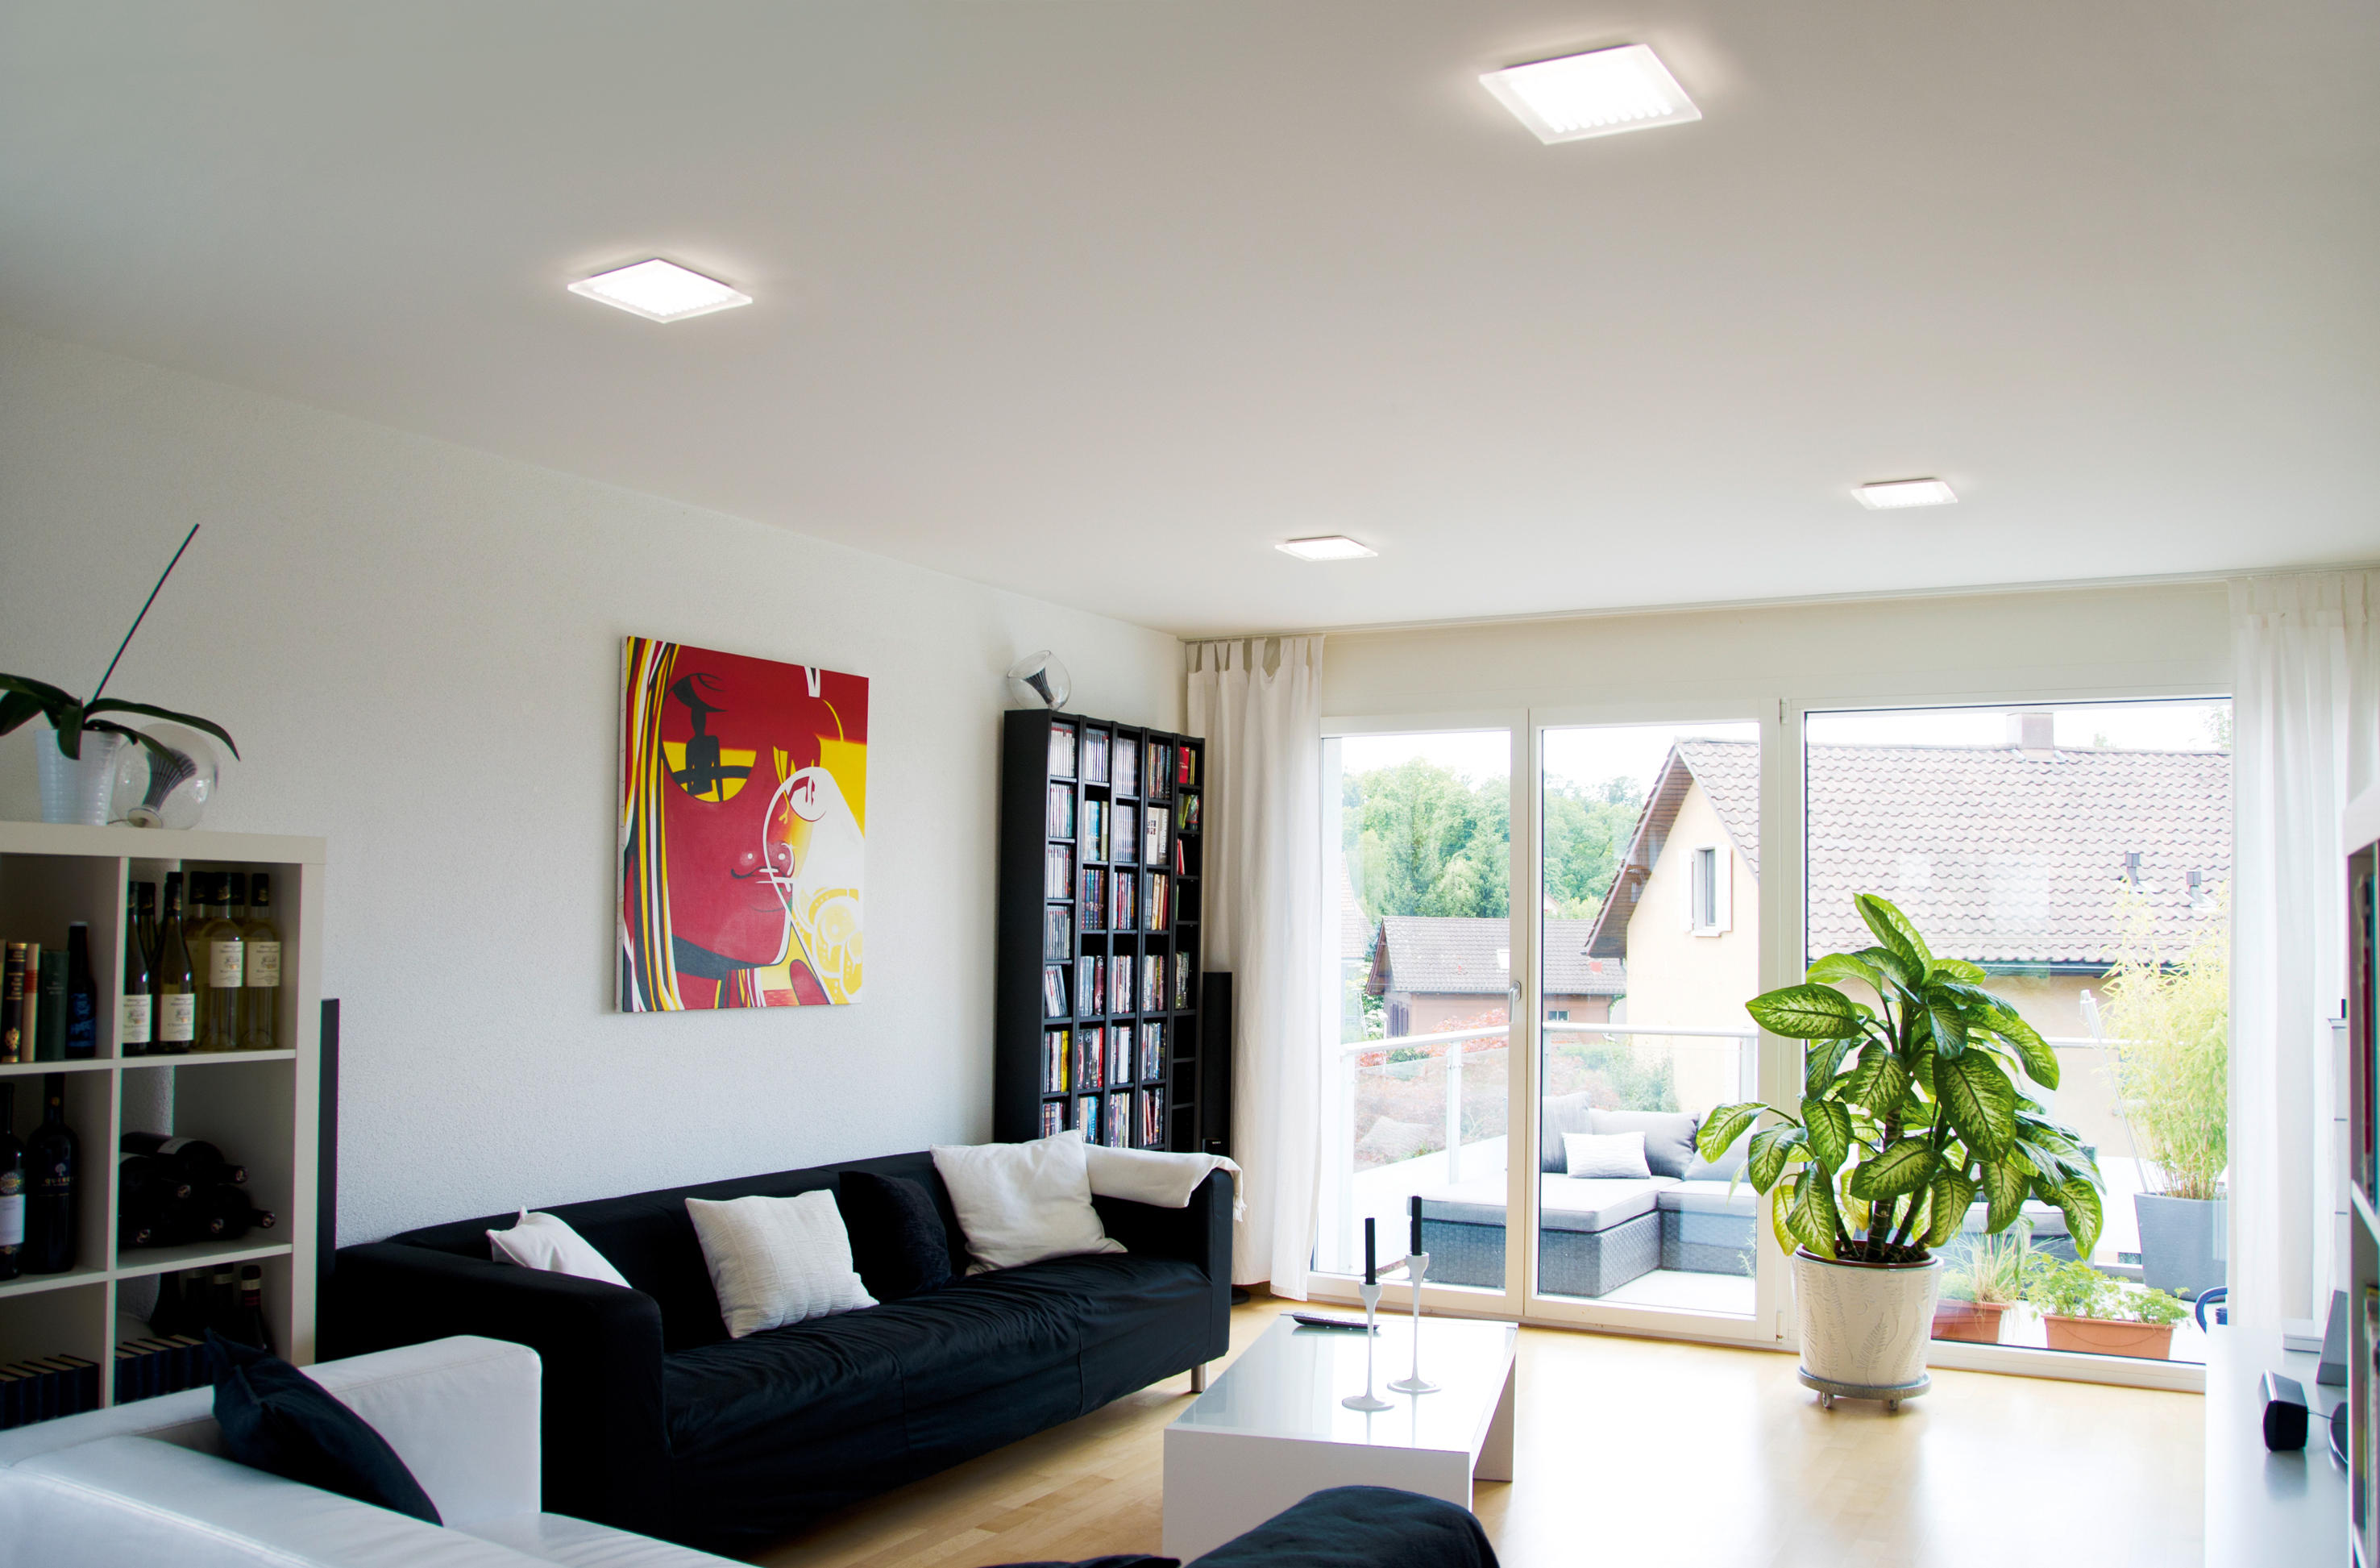 Moderne Wohnwand Mit Led Beleuchtung